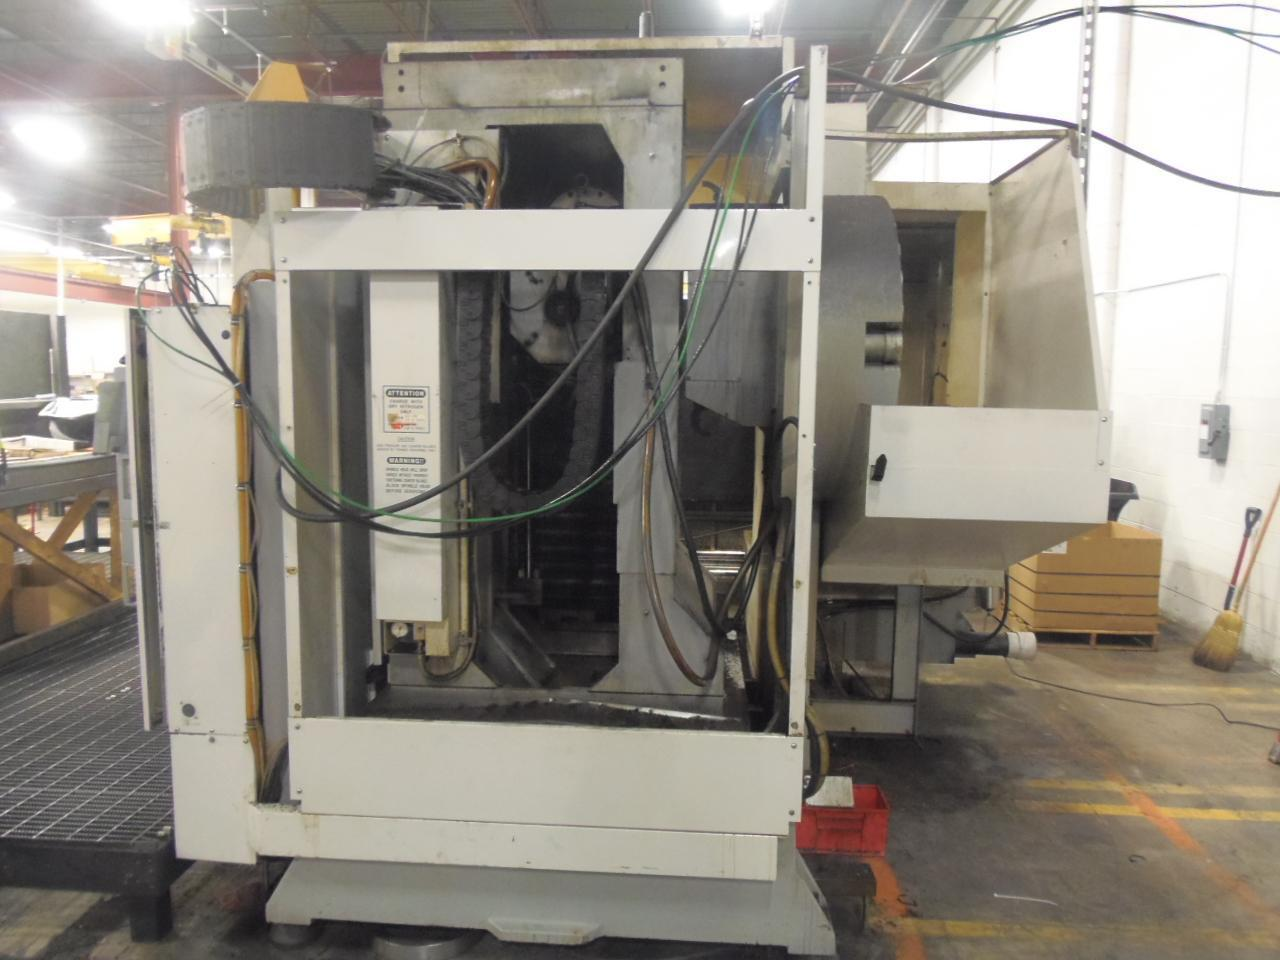 Haas EC-1600-3X Horizontal Machining Center, New 2005, 50 Taper, Thru spindle coolant, 30 HP, Linear Scales, 4th Axis interface